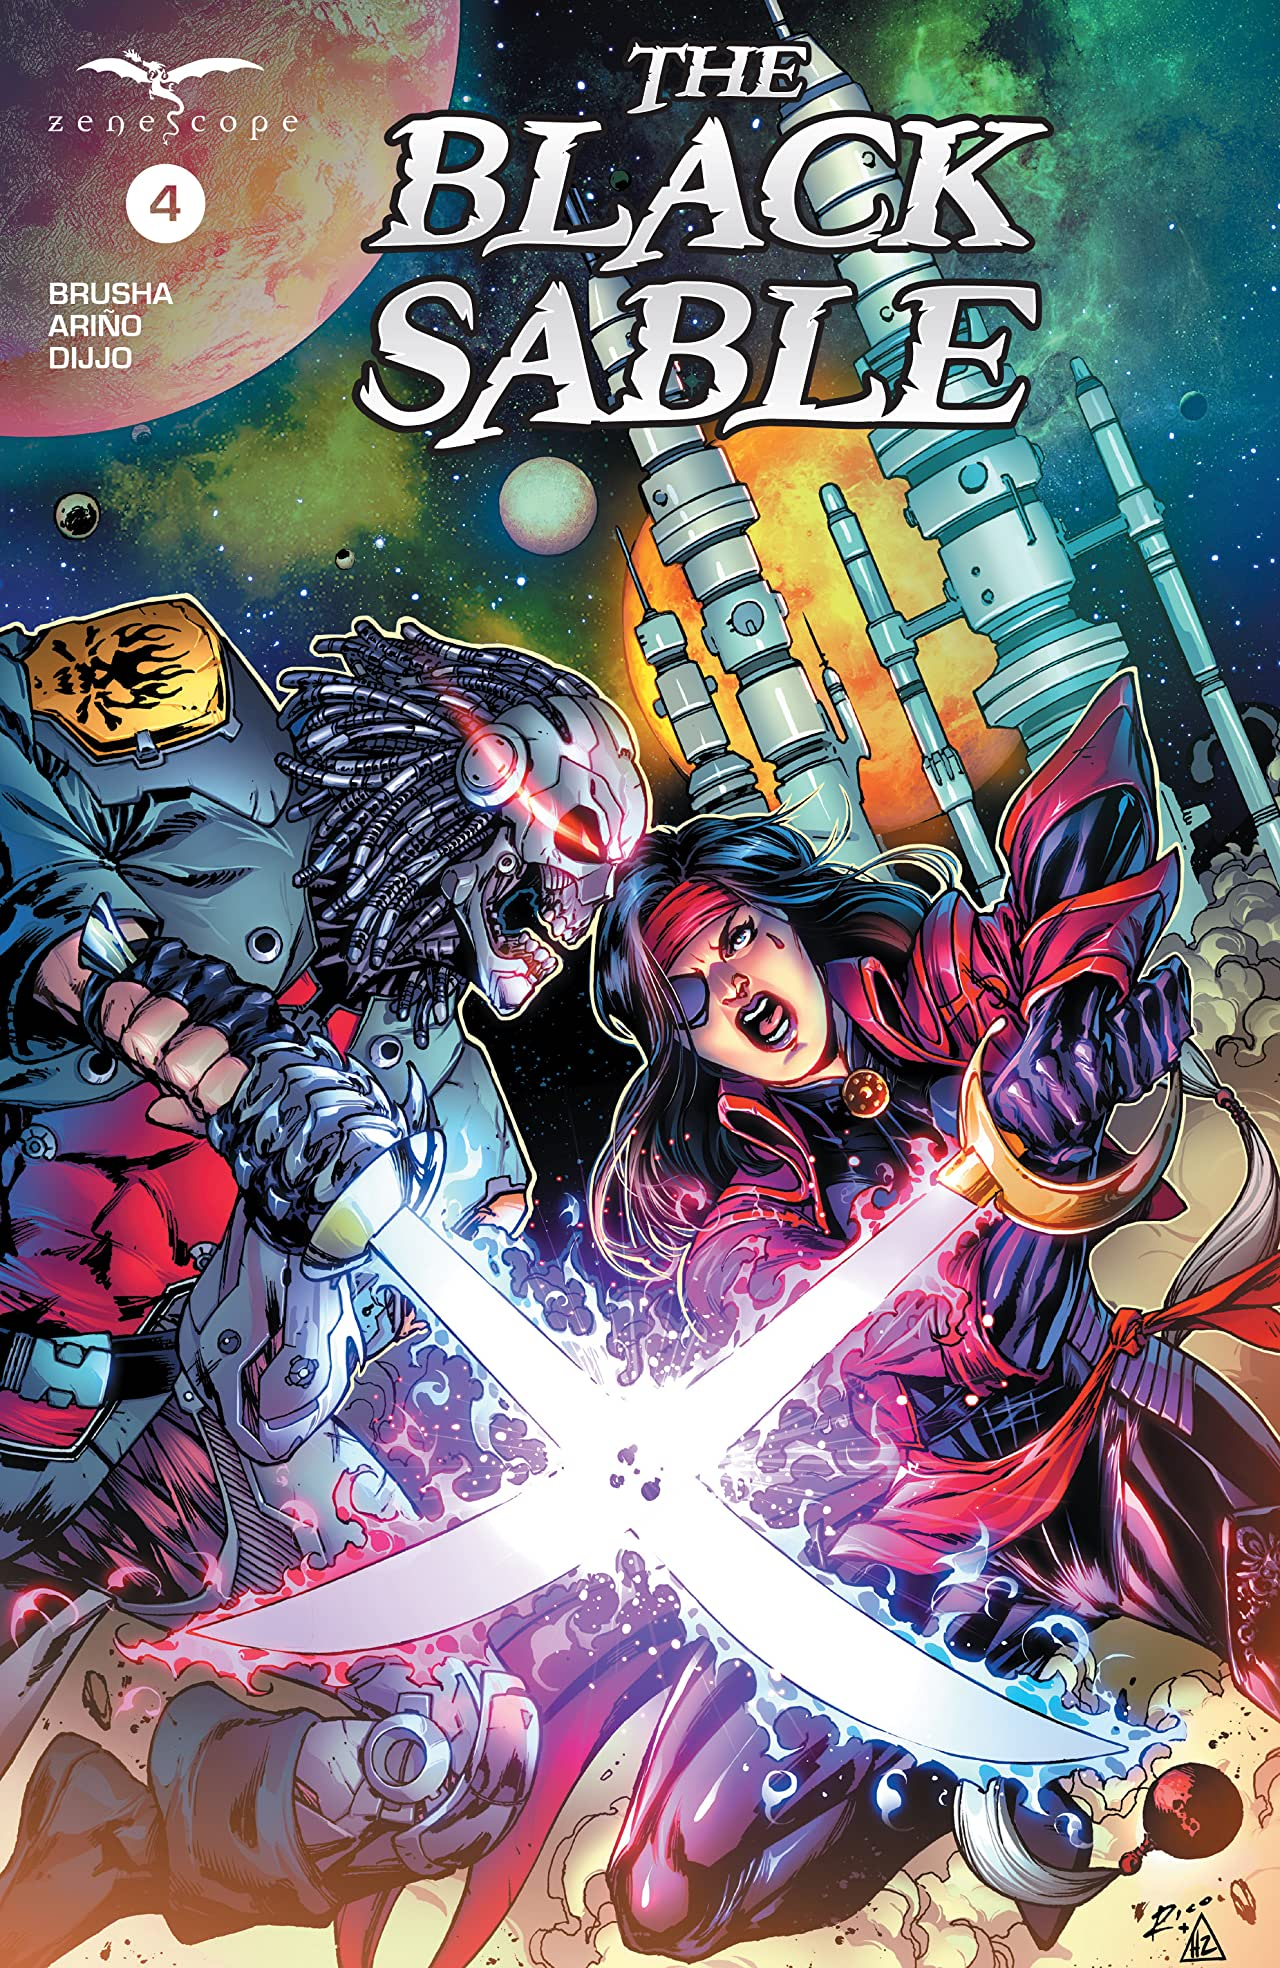 The Black Sable #4